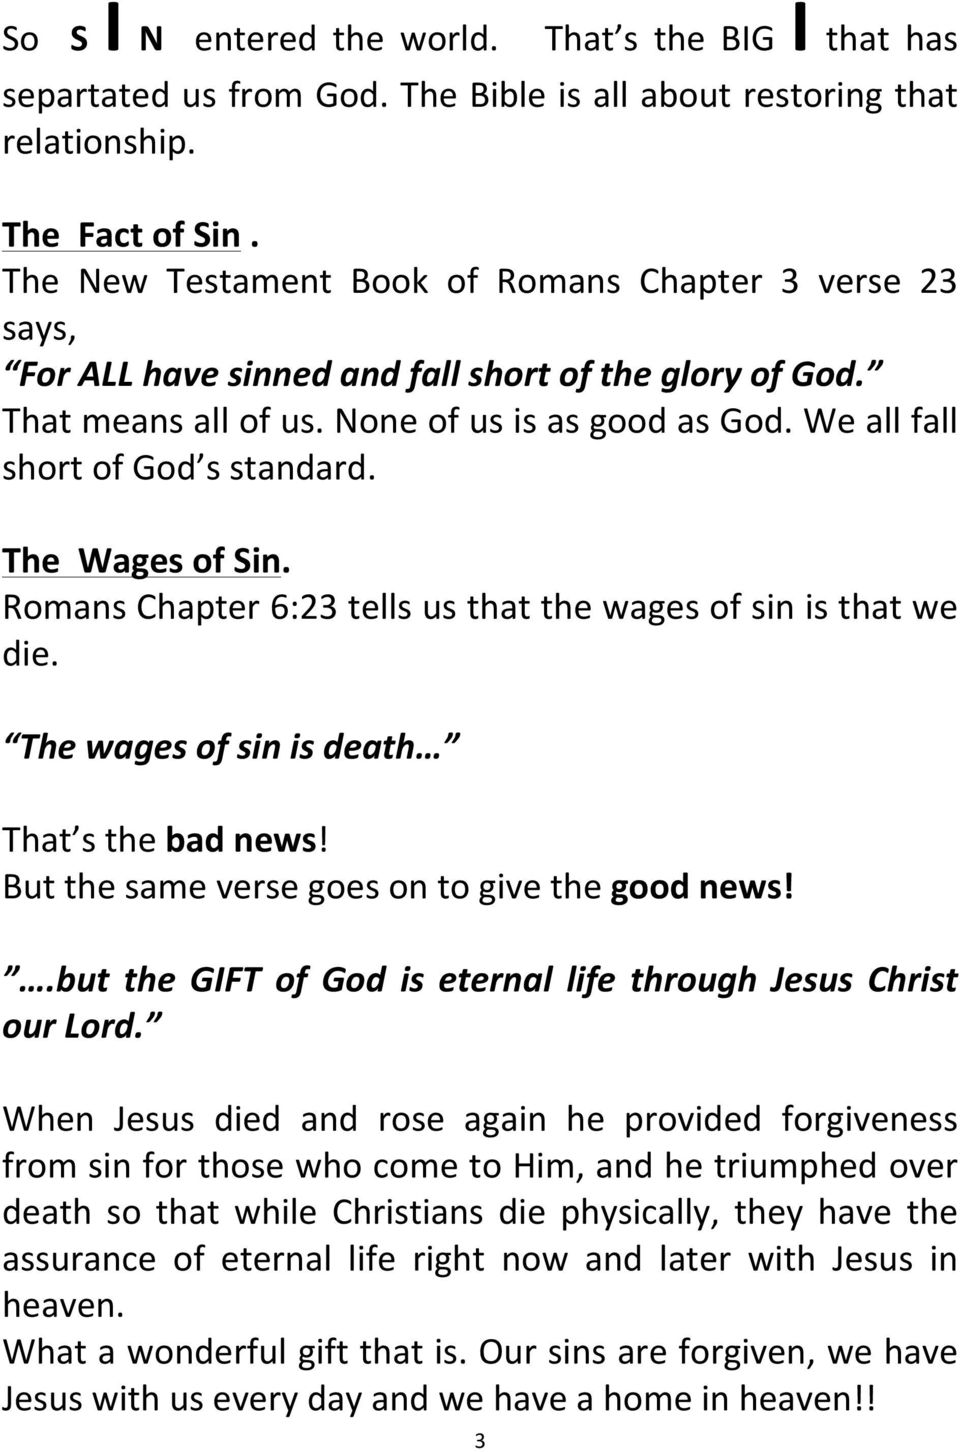 We all fall short of God s standard. The Wages of Sin. Romans Chapter 6:23 tells us that the wages of sin is that we die. The wages of sin is death That s the bad news!